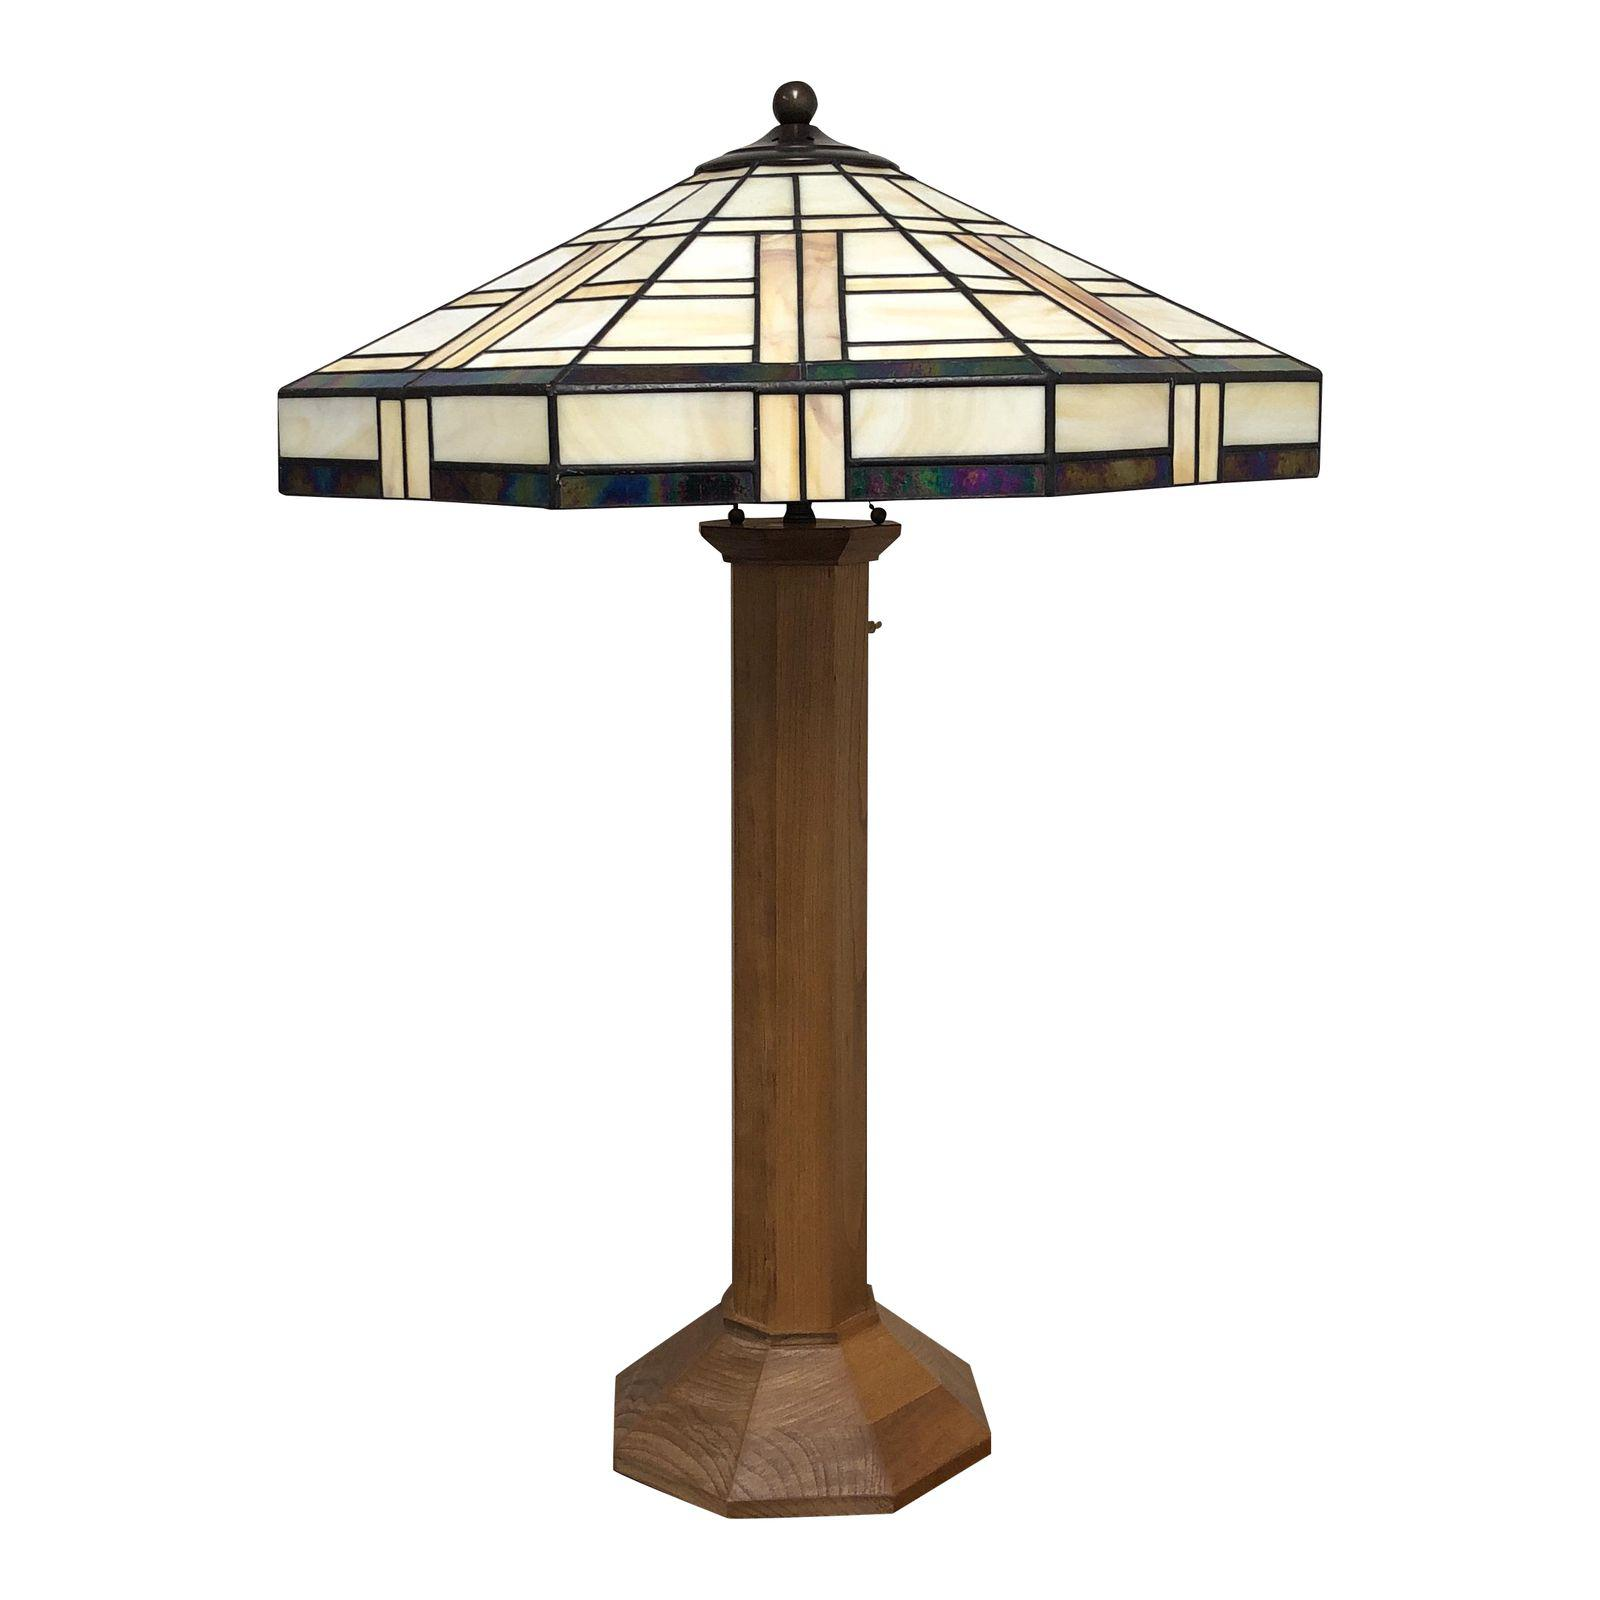 Stickley Mission Collection Table Lamp - Design Plus Gallery